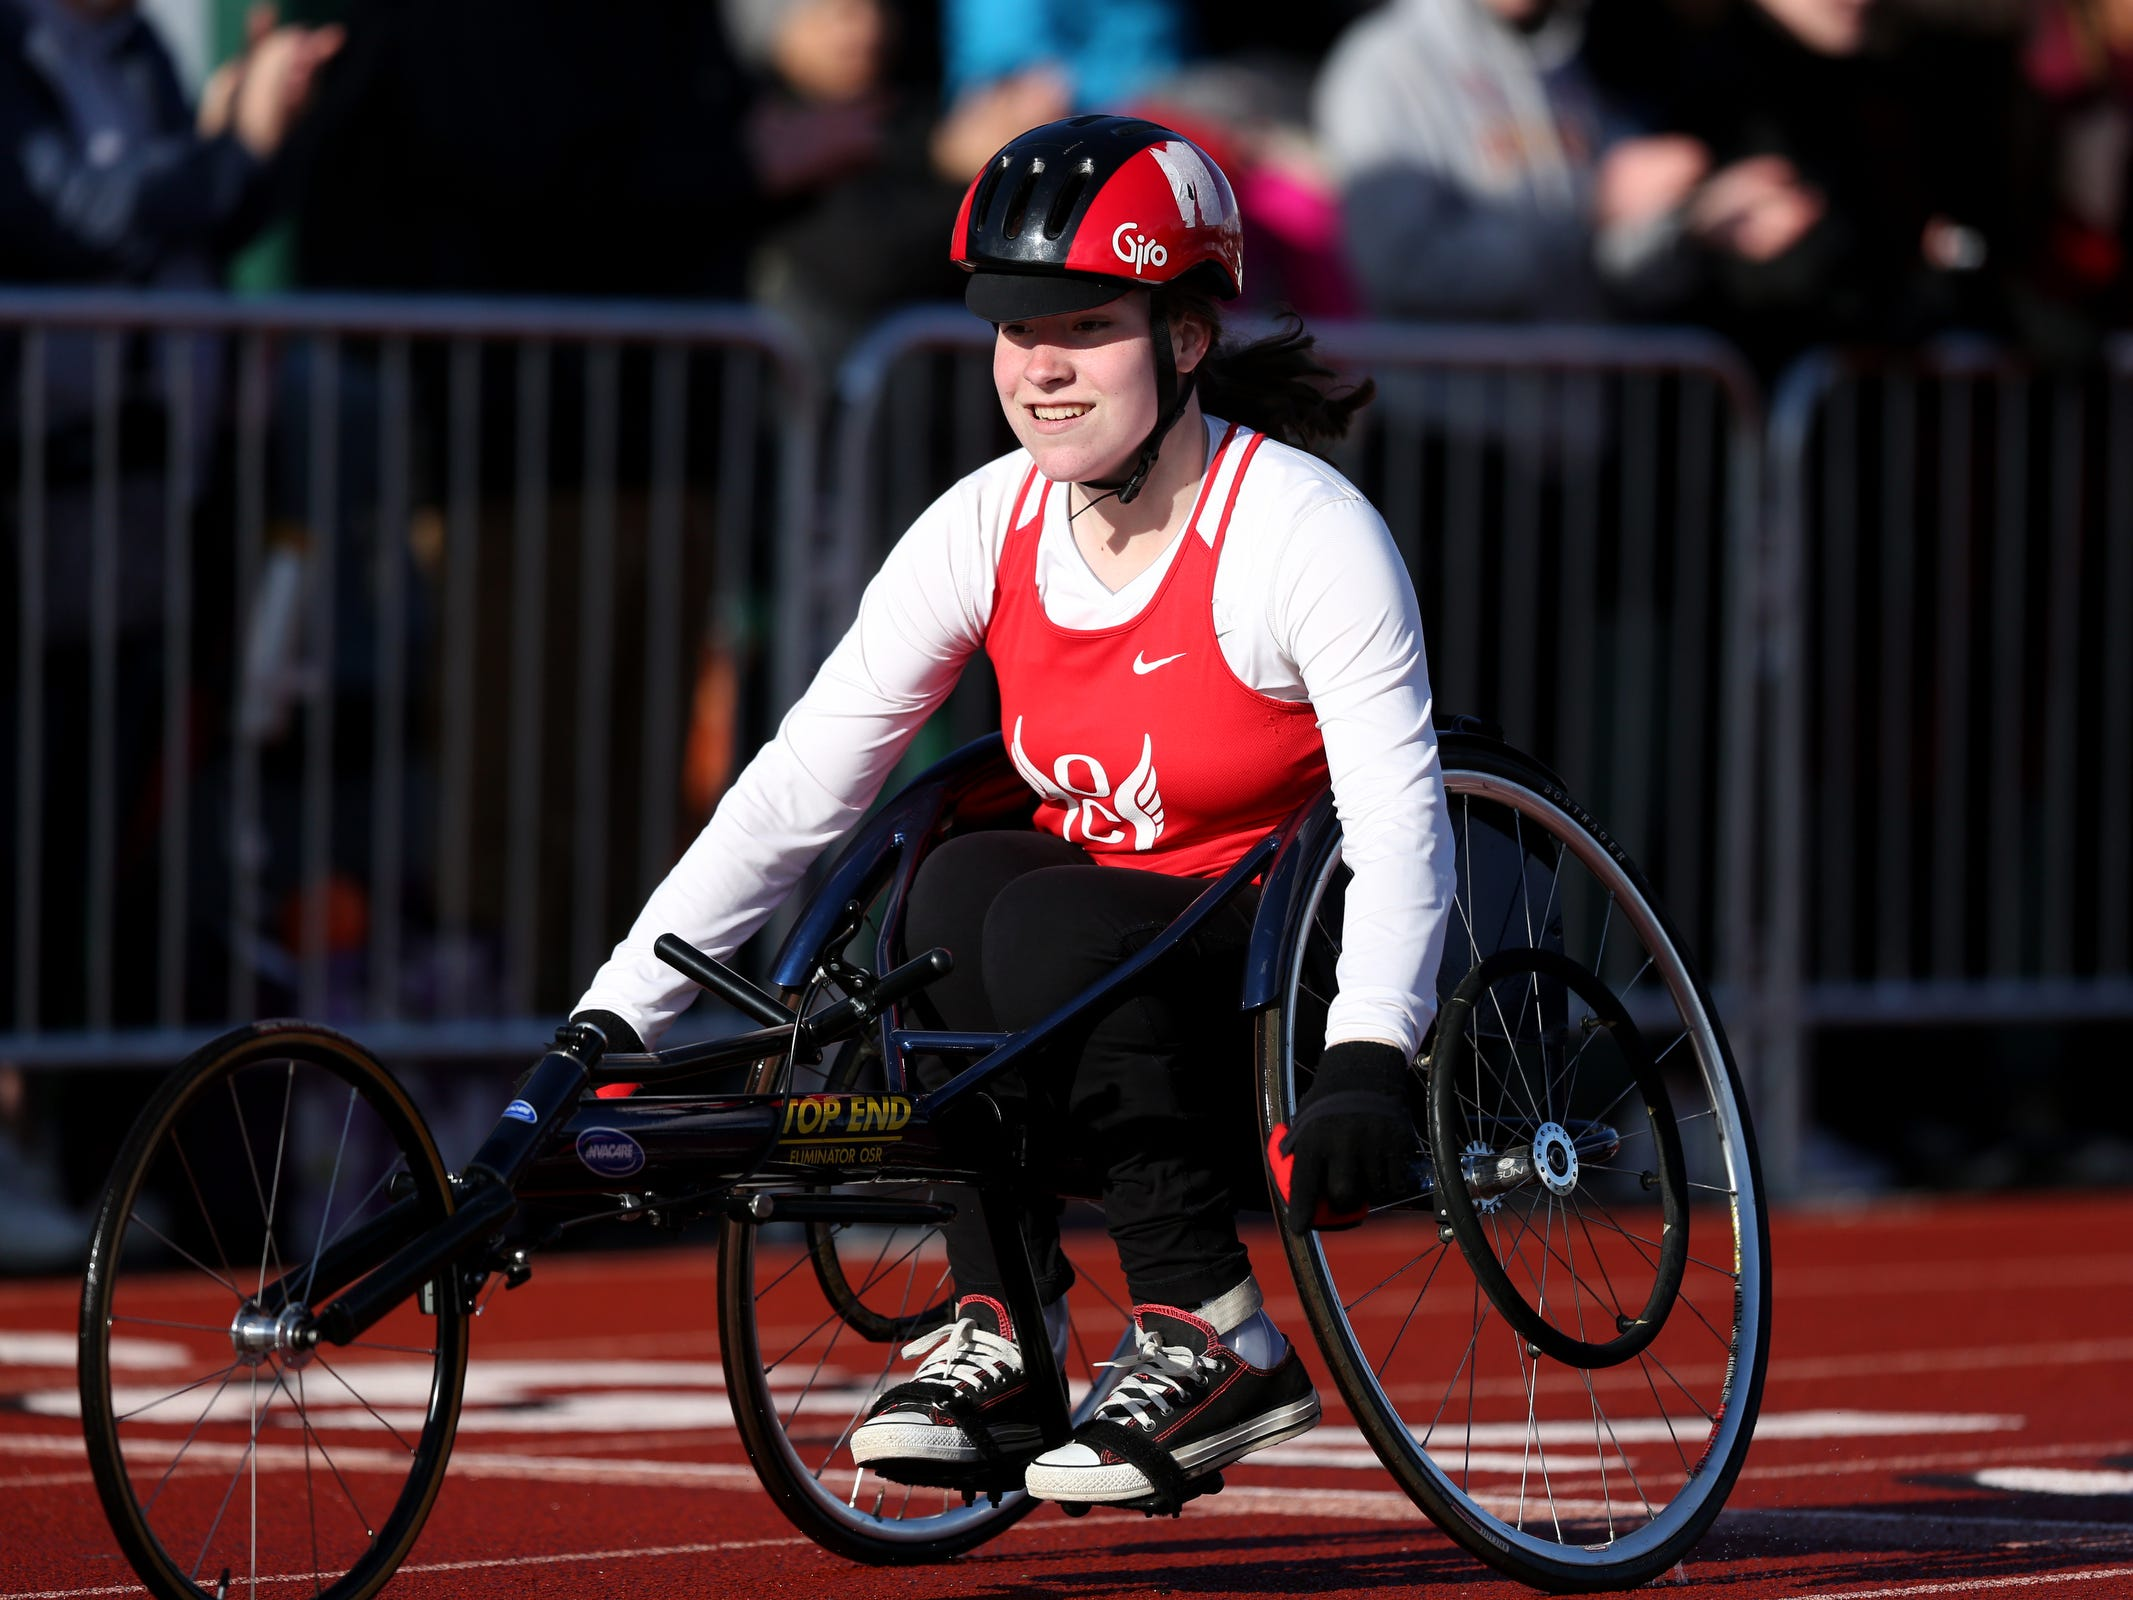 Oregon City's Candice Stilwell competes in the girls 100 meter wheelchair dash during the Titan Track Classic high school track and field meet at West Salem High School on April 5, 2019.